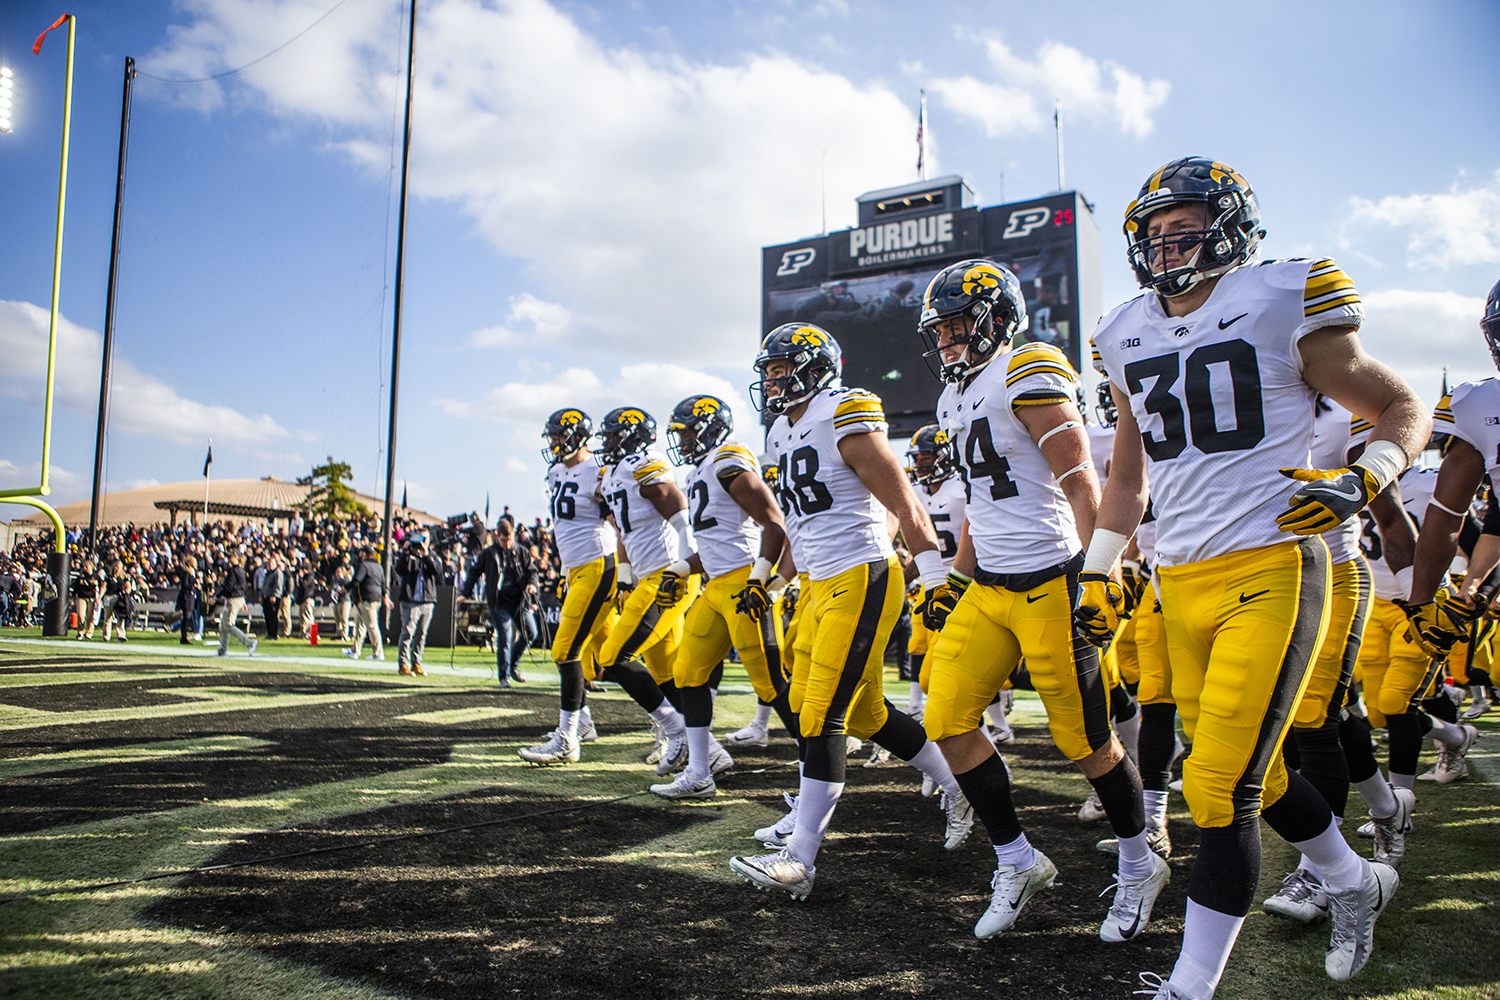 Iowa players enter the field during the Iowa/Purdue game at Ross-Ade Stadium in West Lafayette, Indiana on Saturday, Nov. 3, 2018. The Boilermakers defeated the Hawkeyes 38-36.